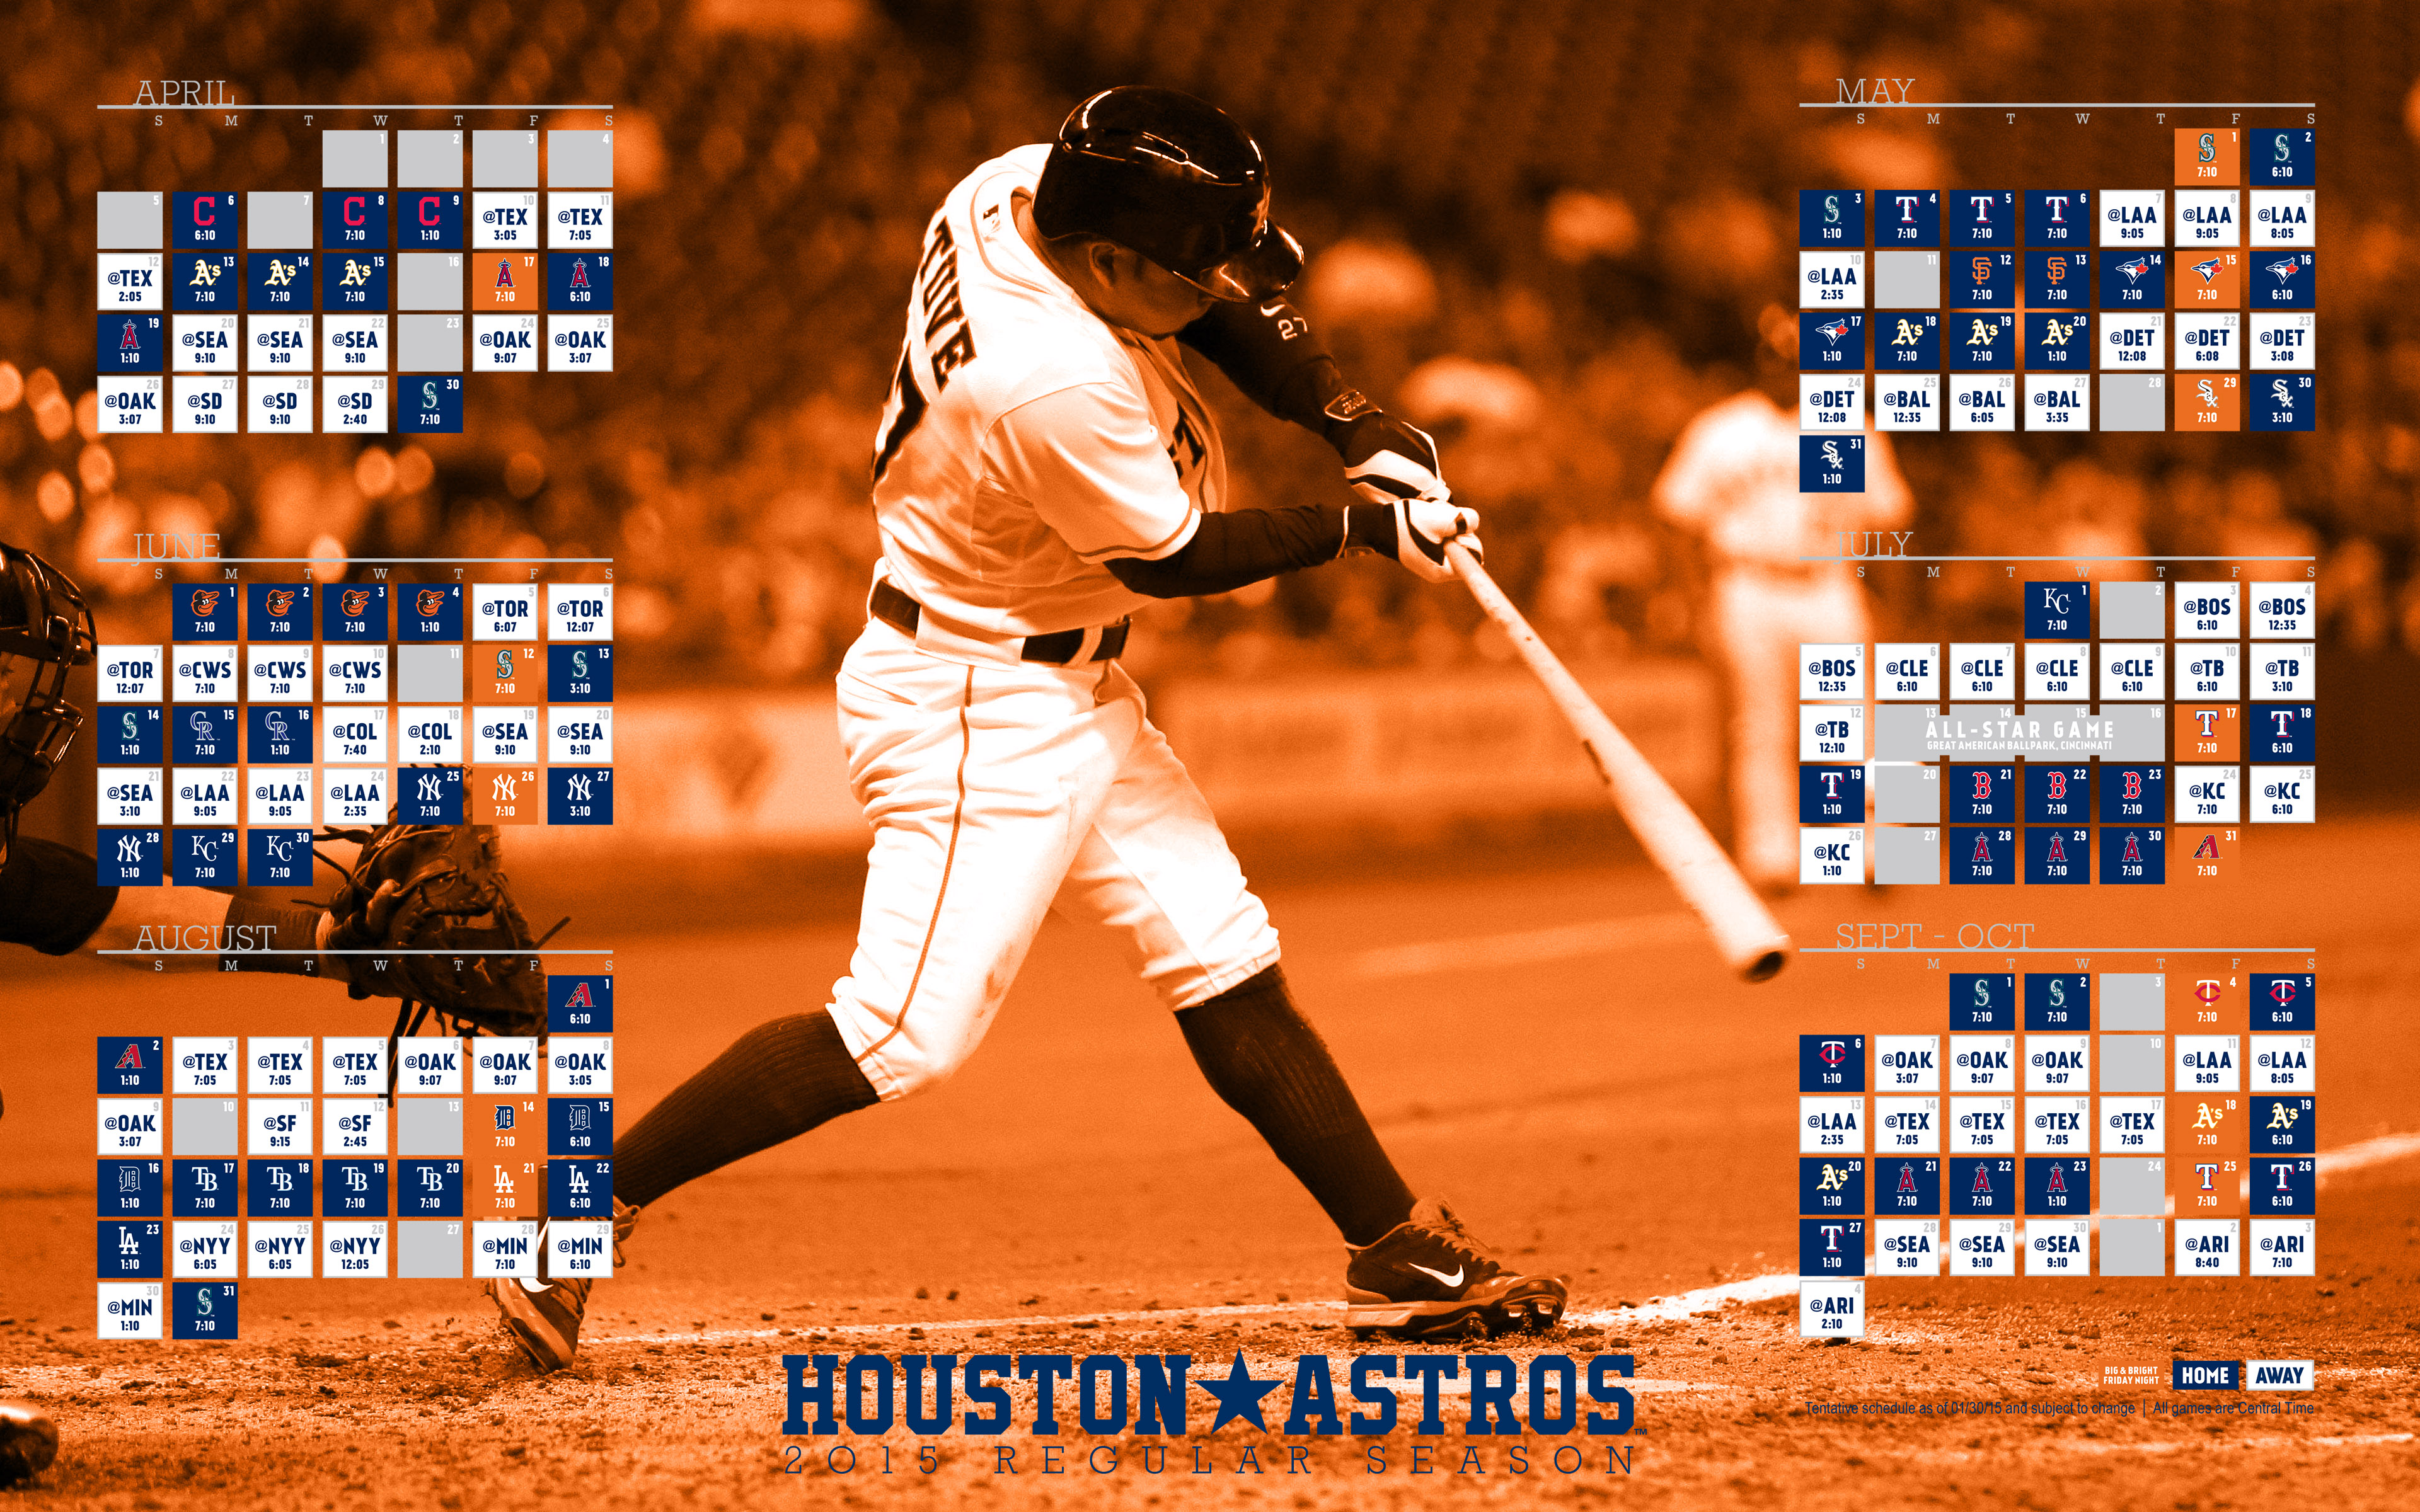 Houston Astros Wallpaper 2015 Full Hd Pictures